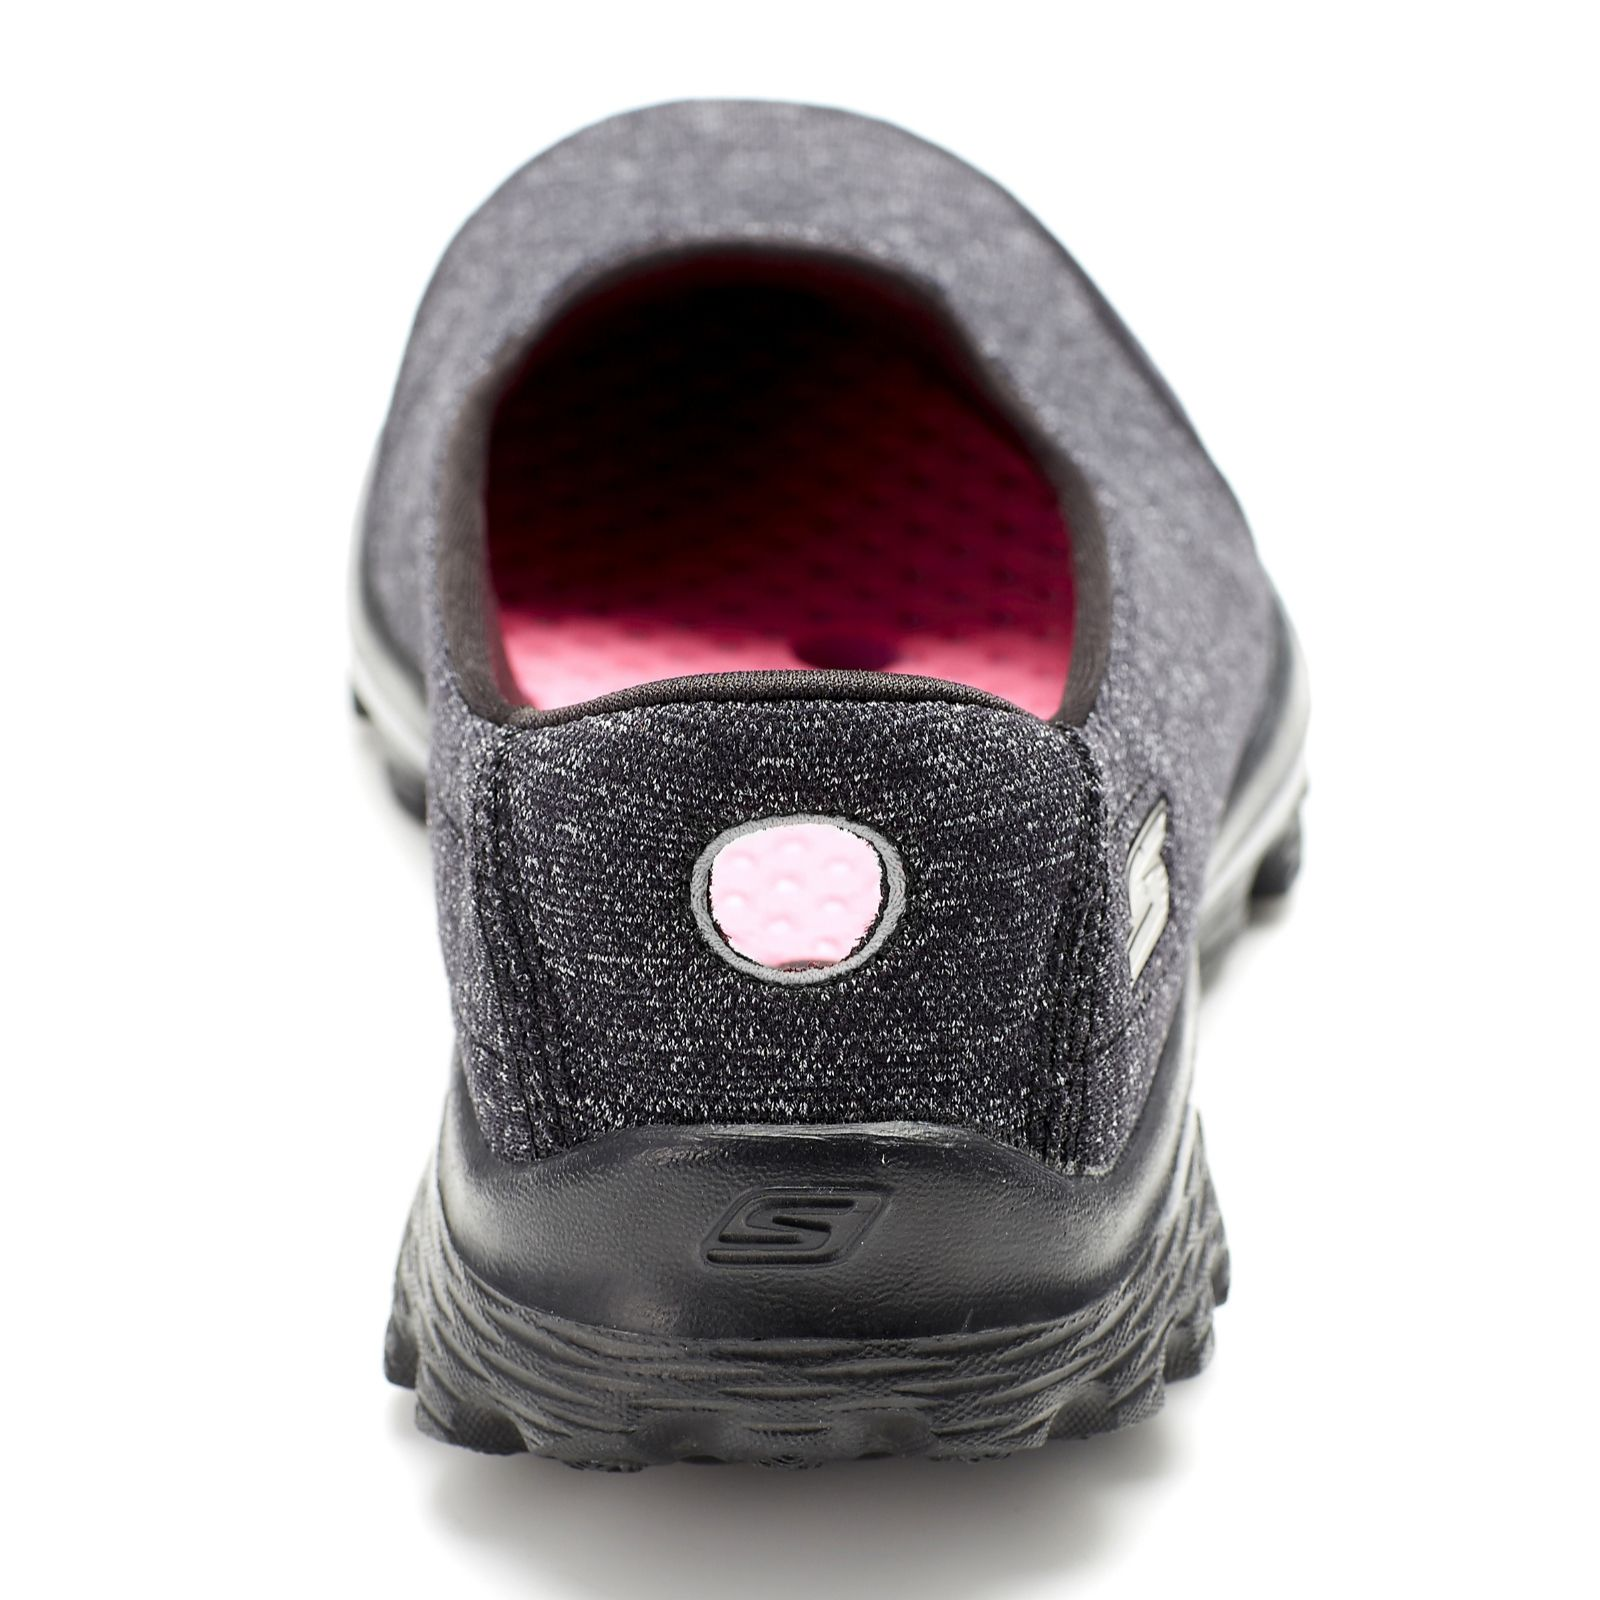 Skechers GOwalk 2 Super Sock Walking Shoe with Goga Mat Insole - Page 1 - QVC UK